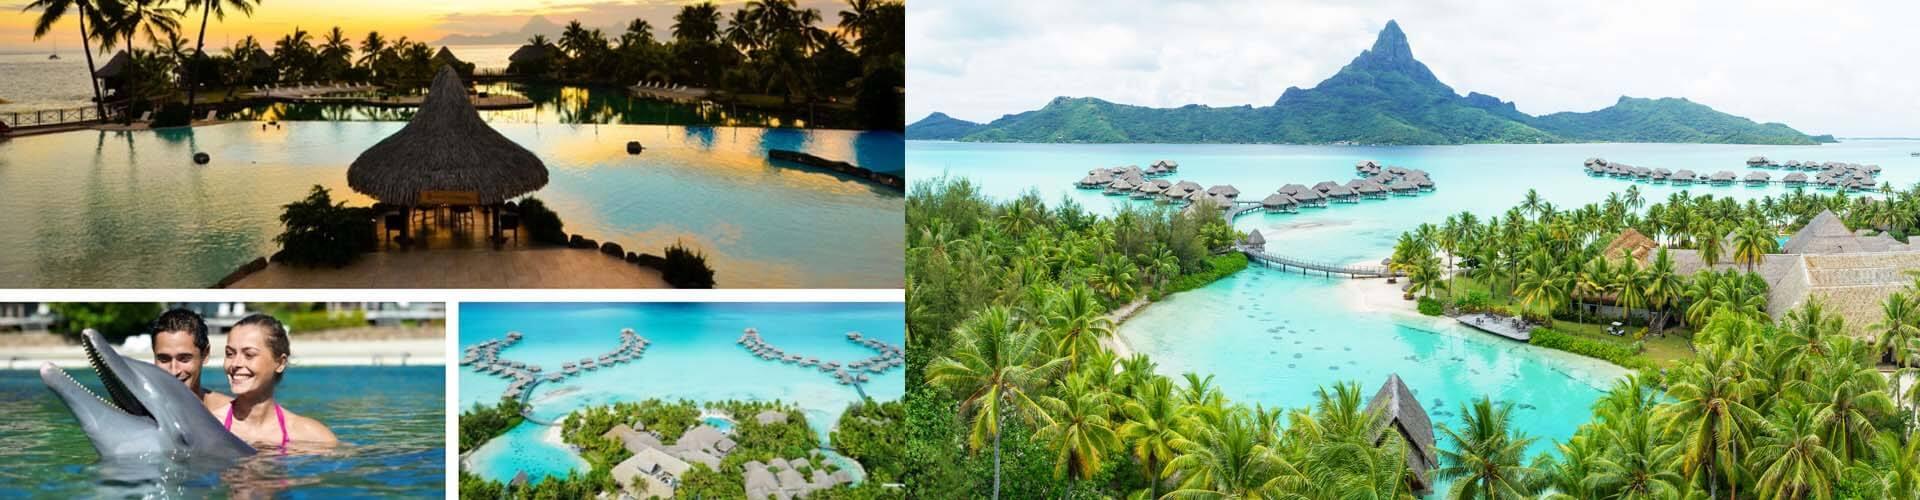 3 Islands of Tahiti Luxury Combo